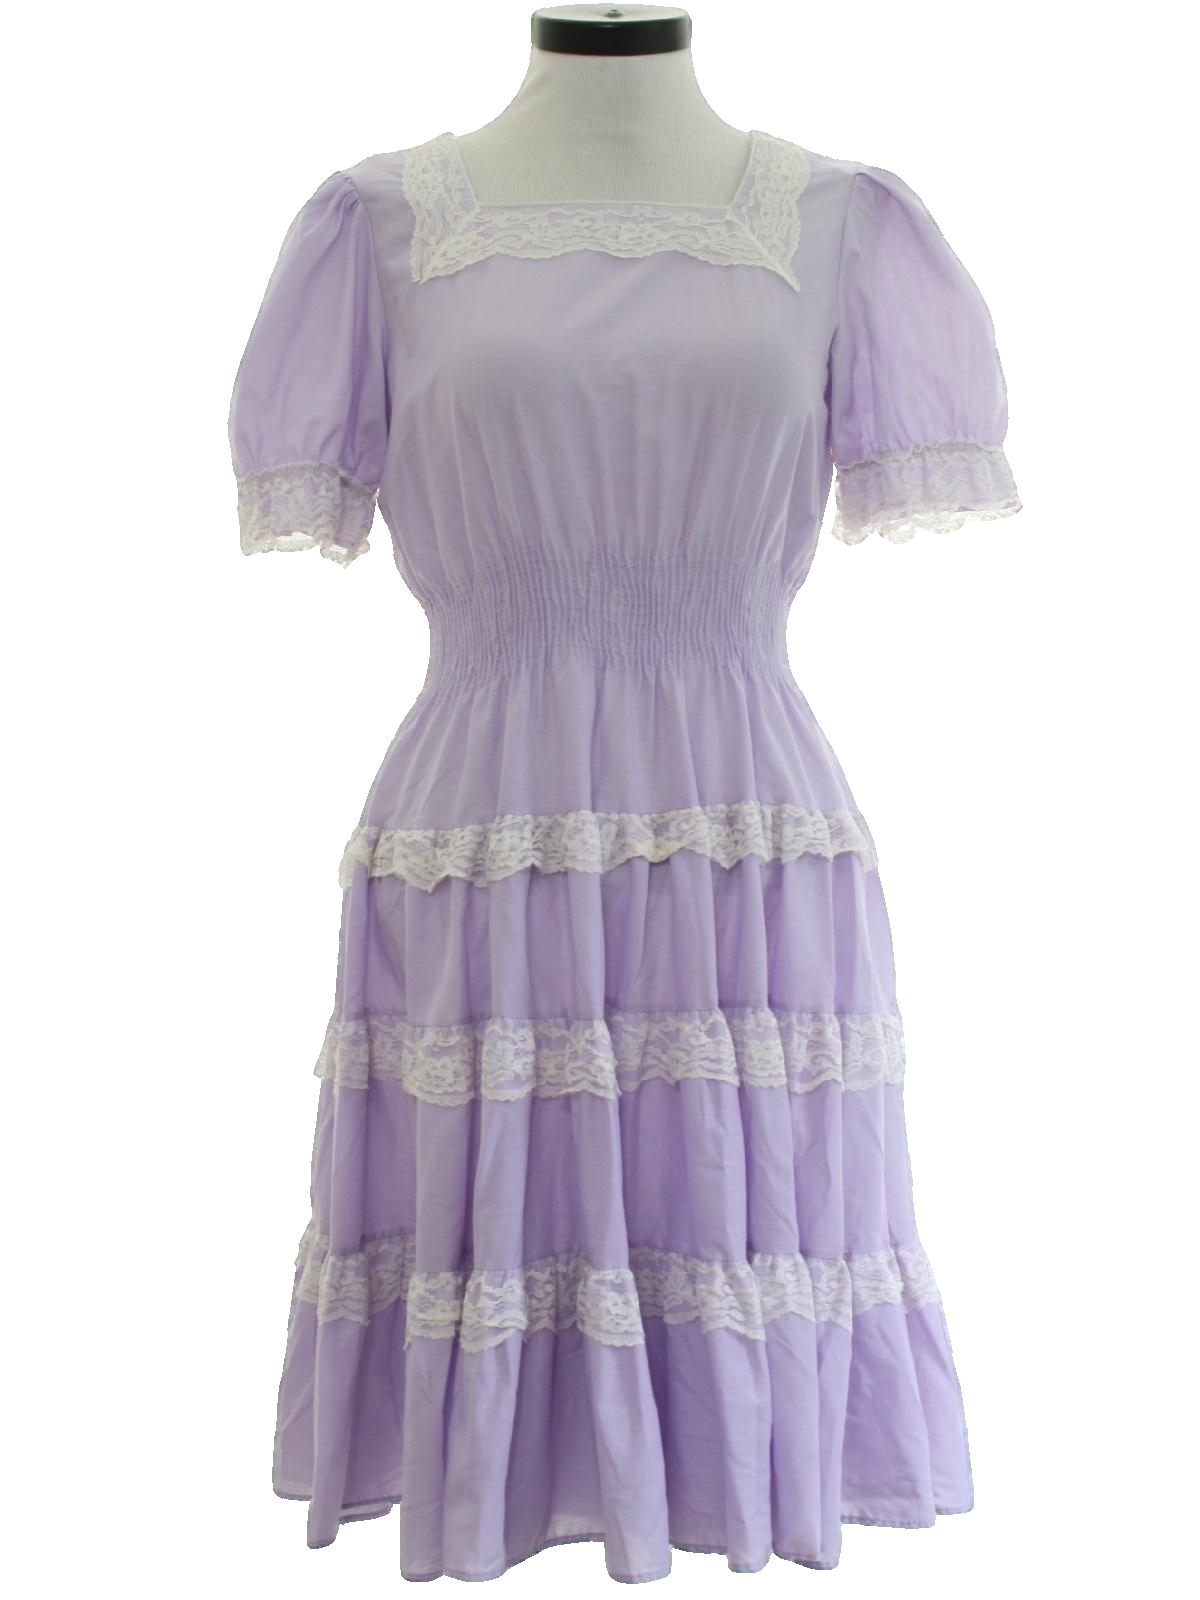 Retro 1970 S Dress Missing Label Late 70s Or Early 80s